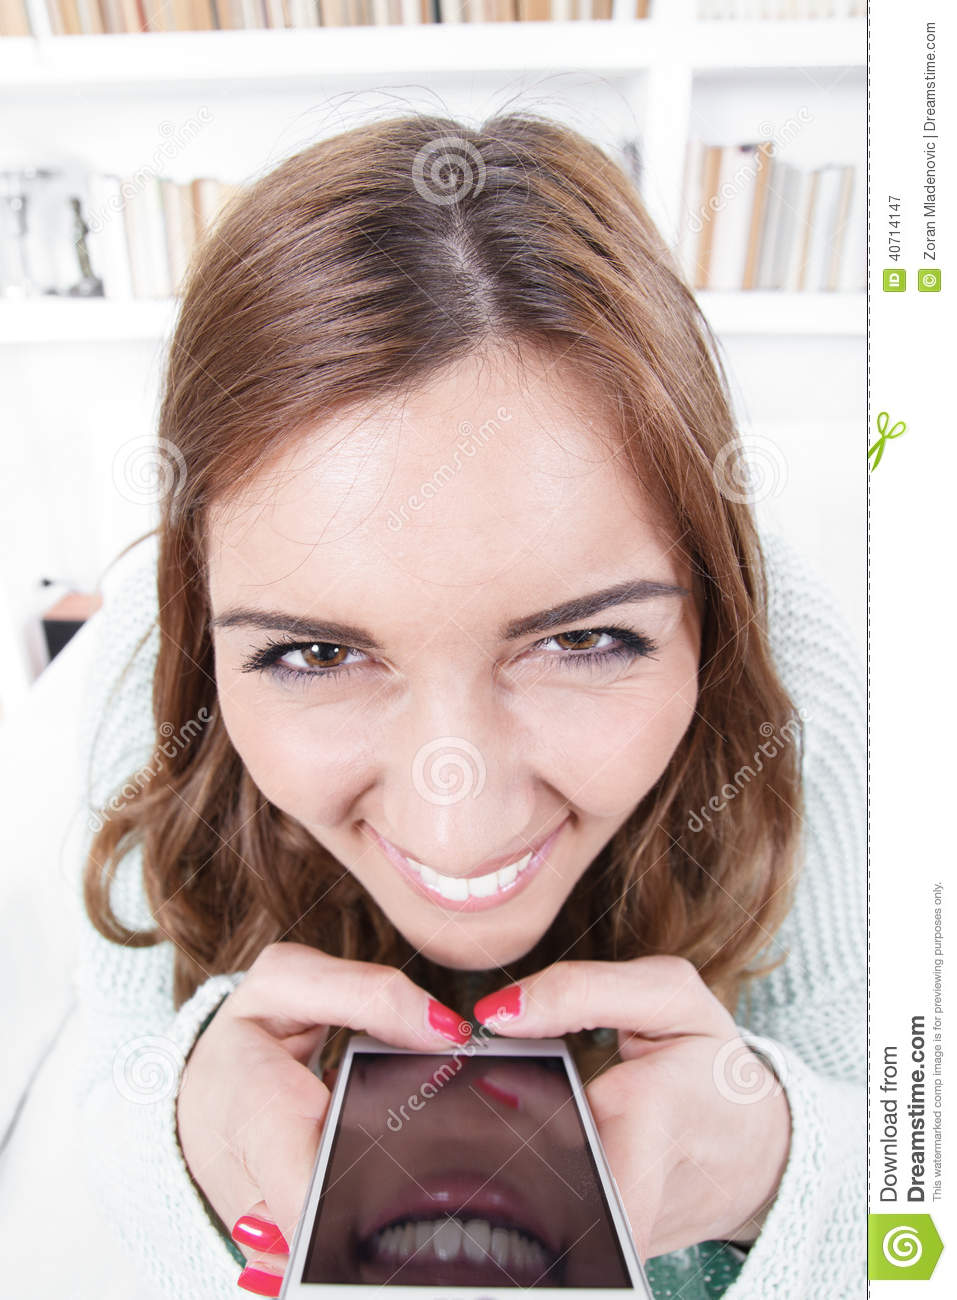 Young woman with crazy face expression